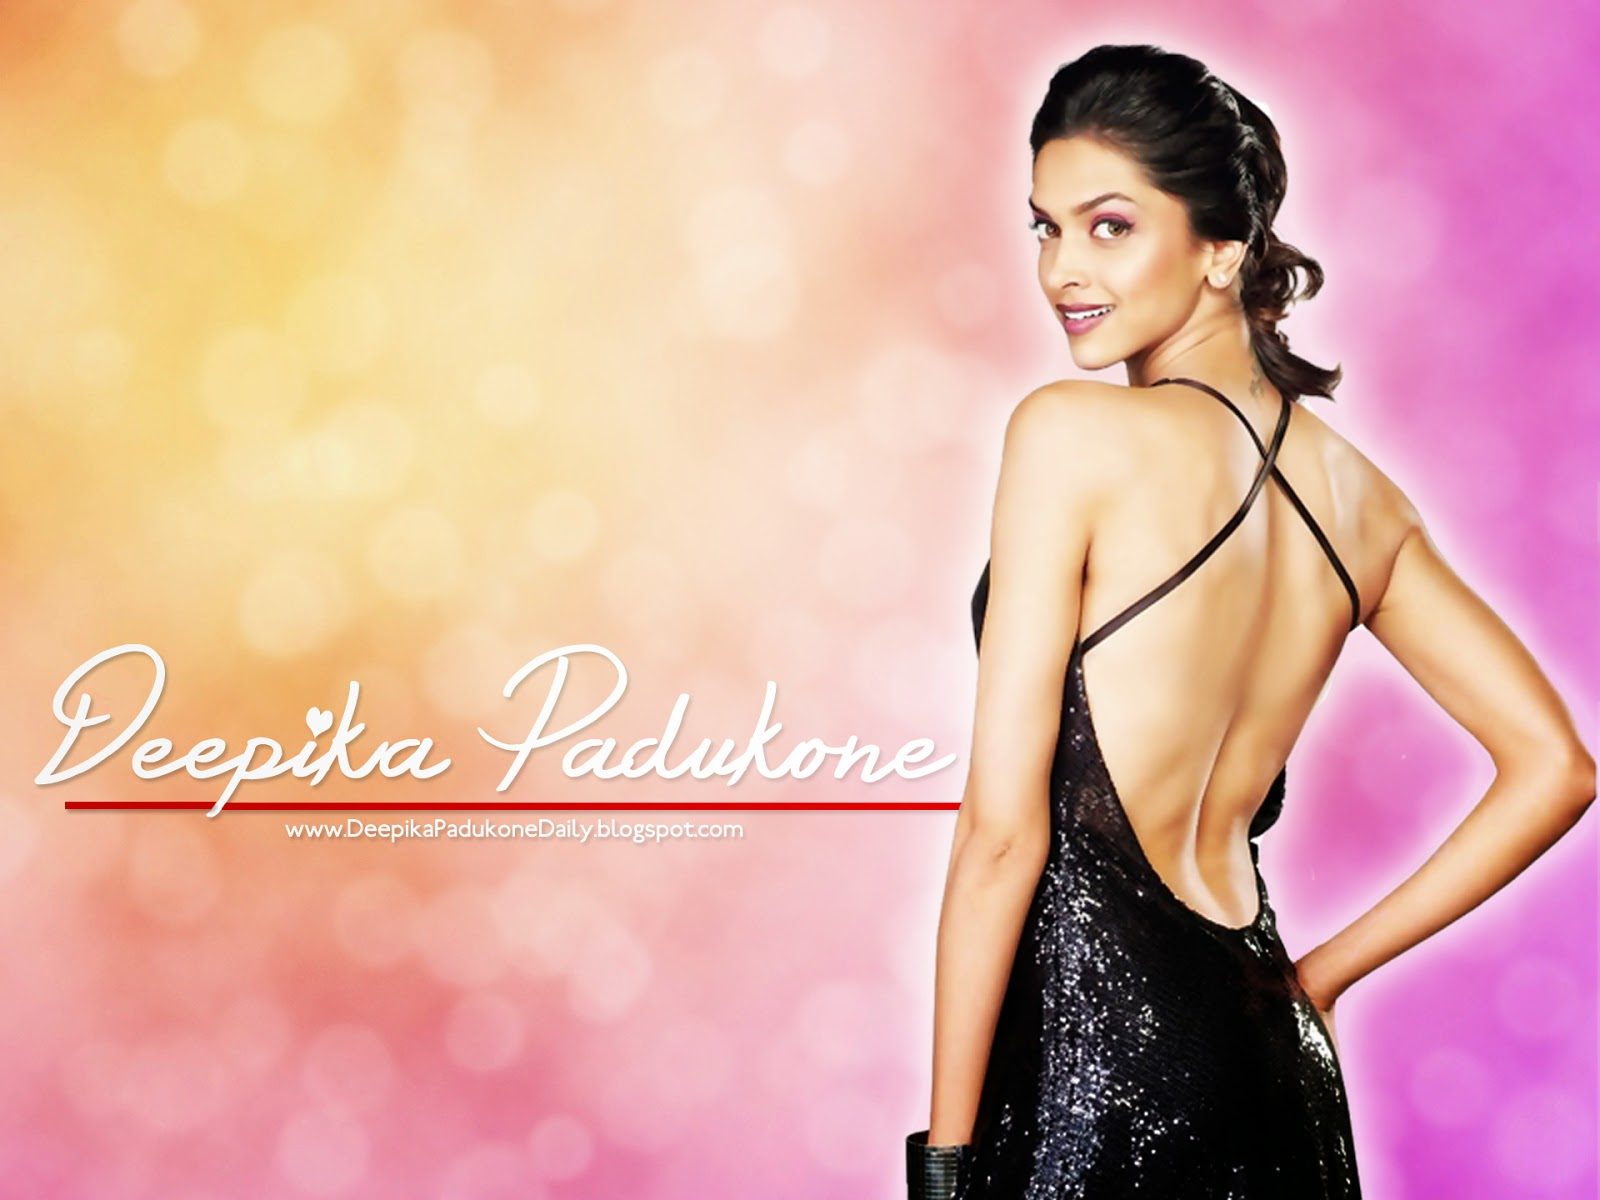 Deepika Padukone New HD Wallpaper 2014